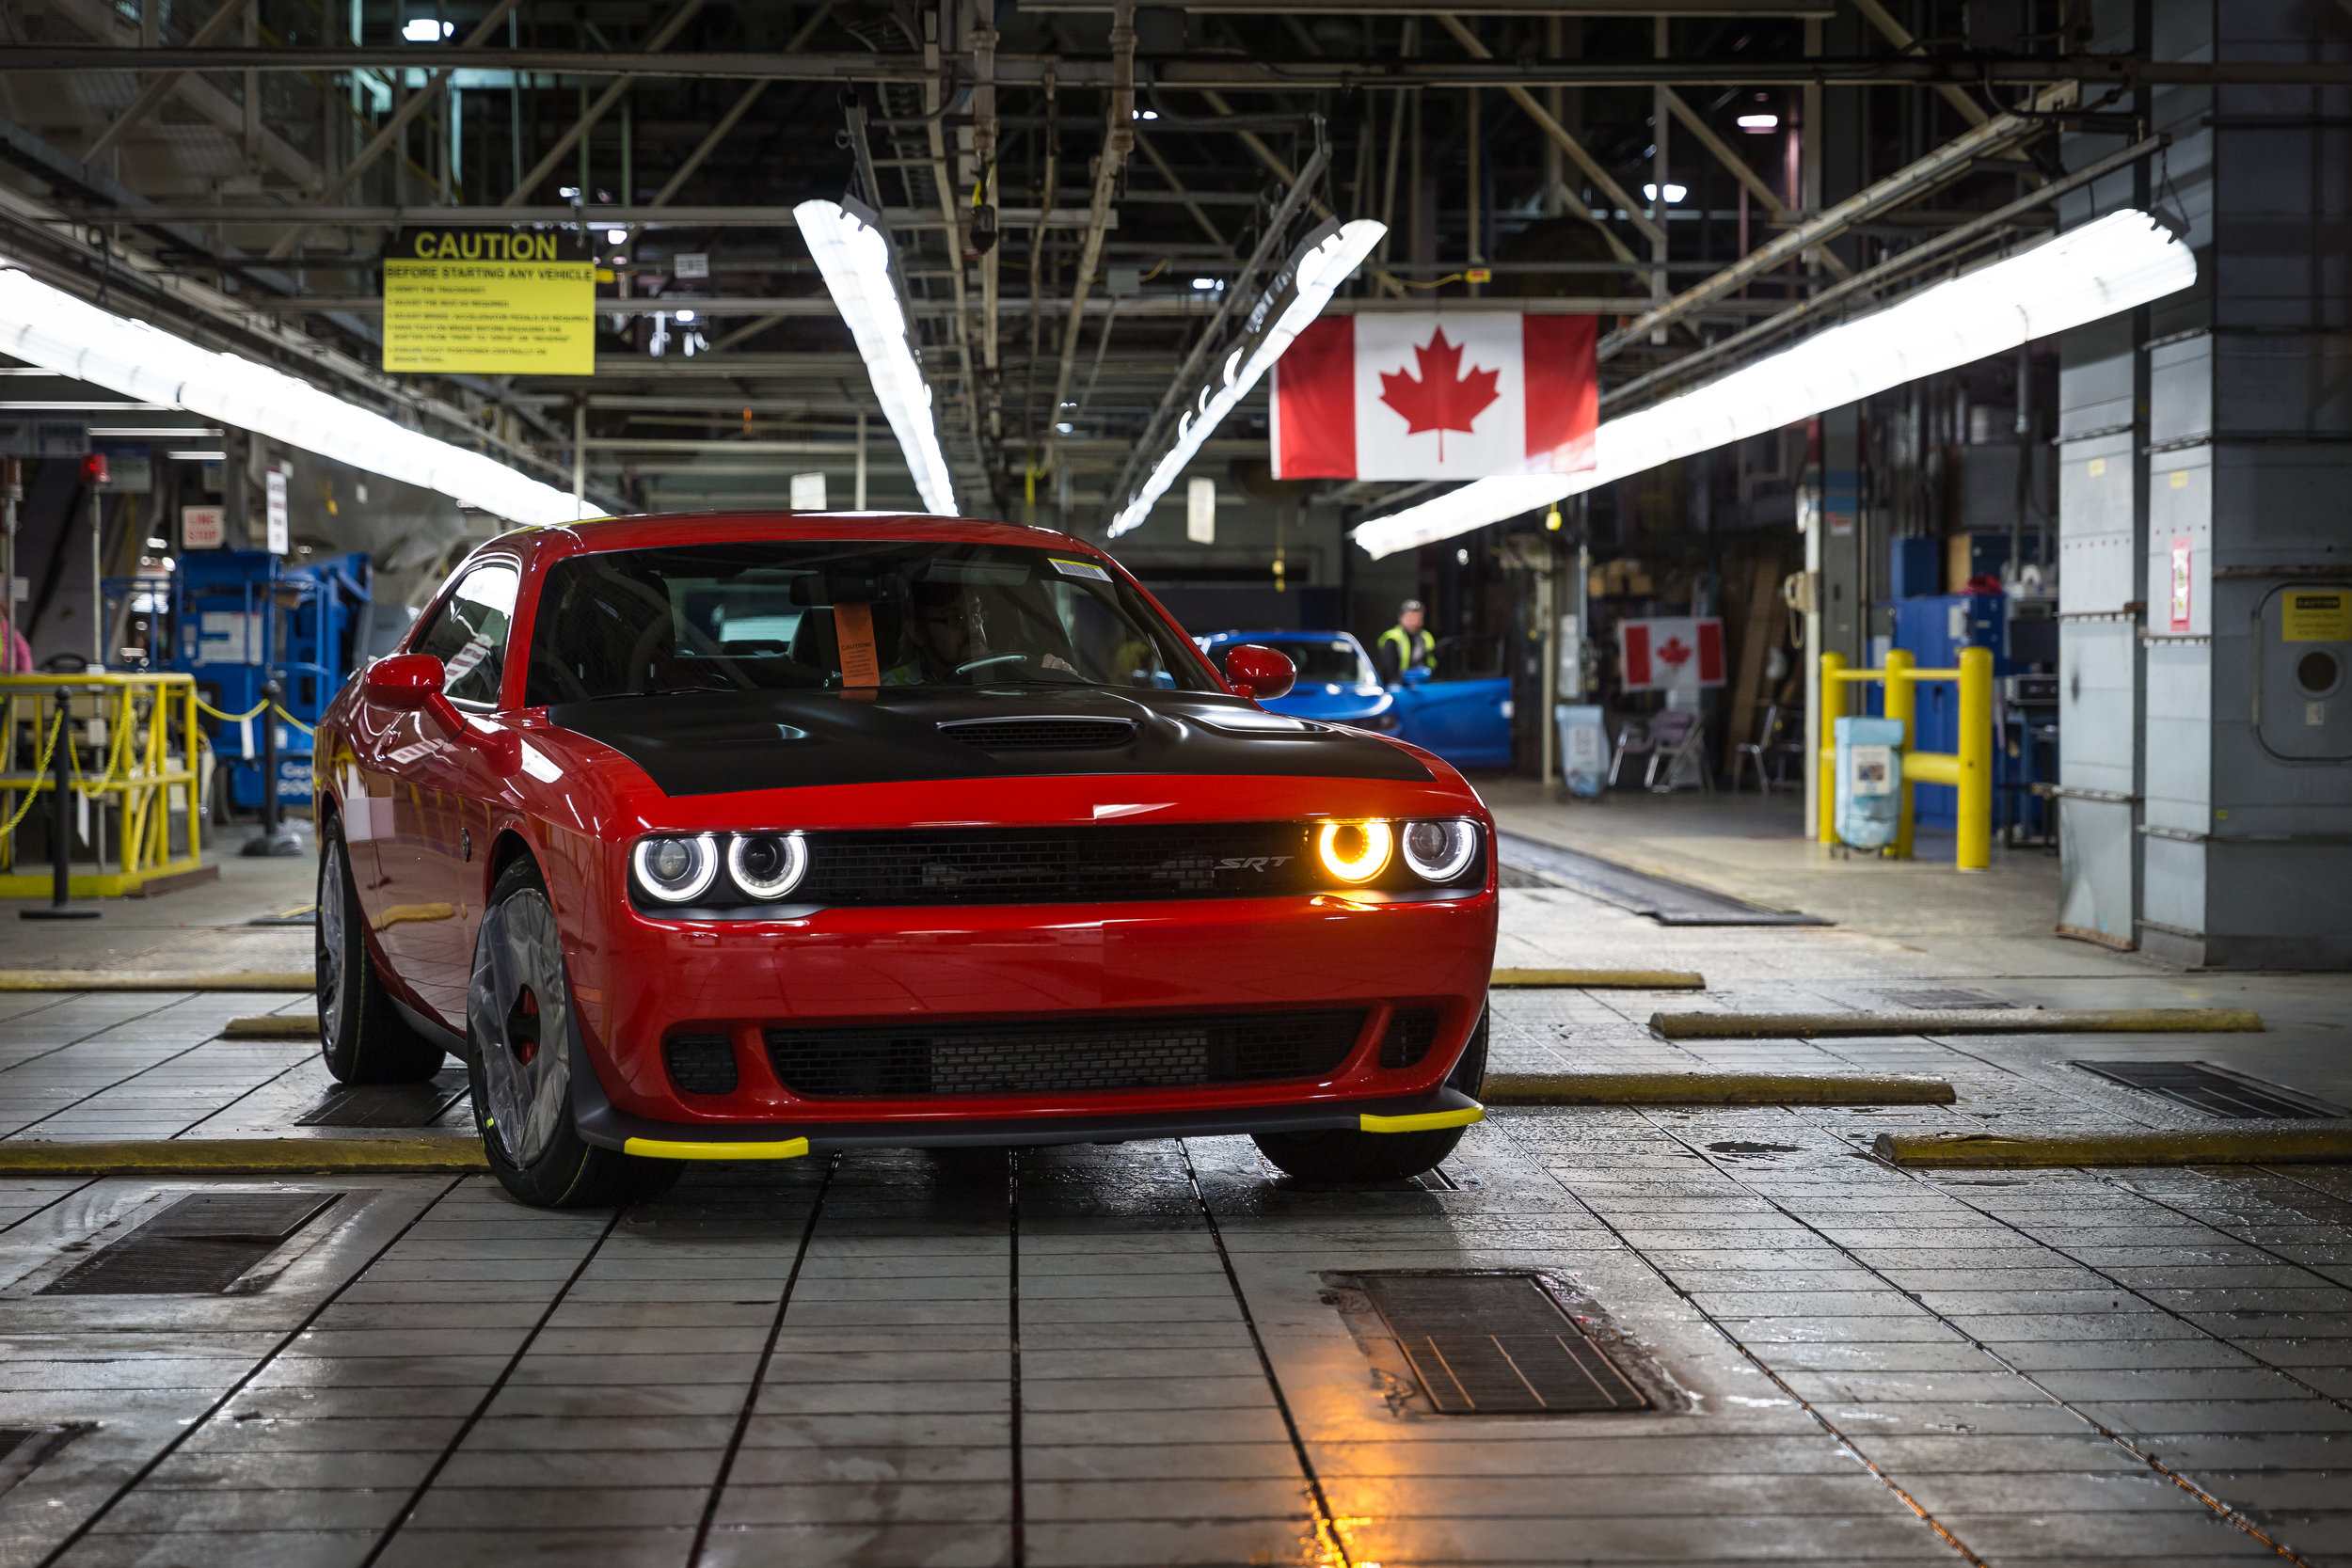 FCA Chrysler - Brampton Assembly Plant-158.jpg